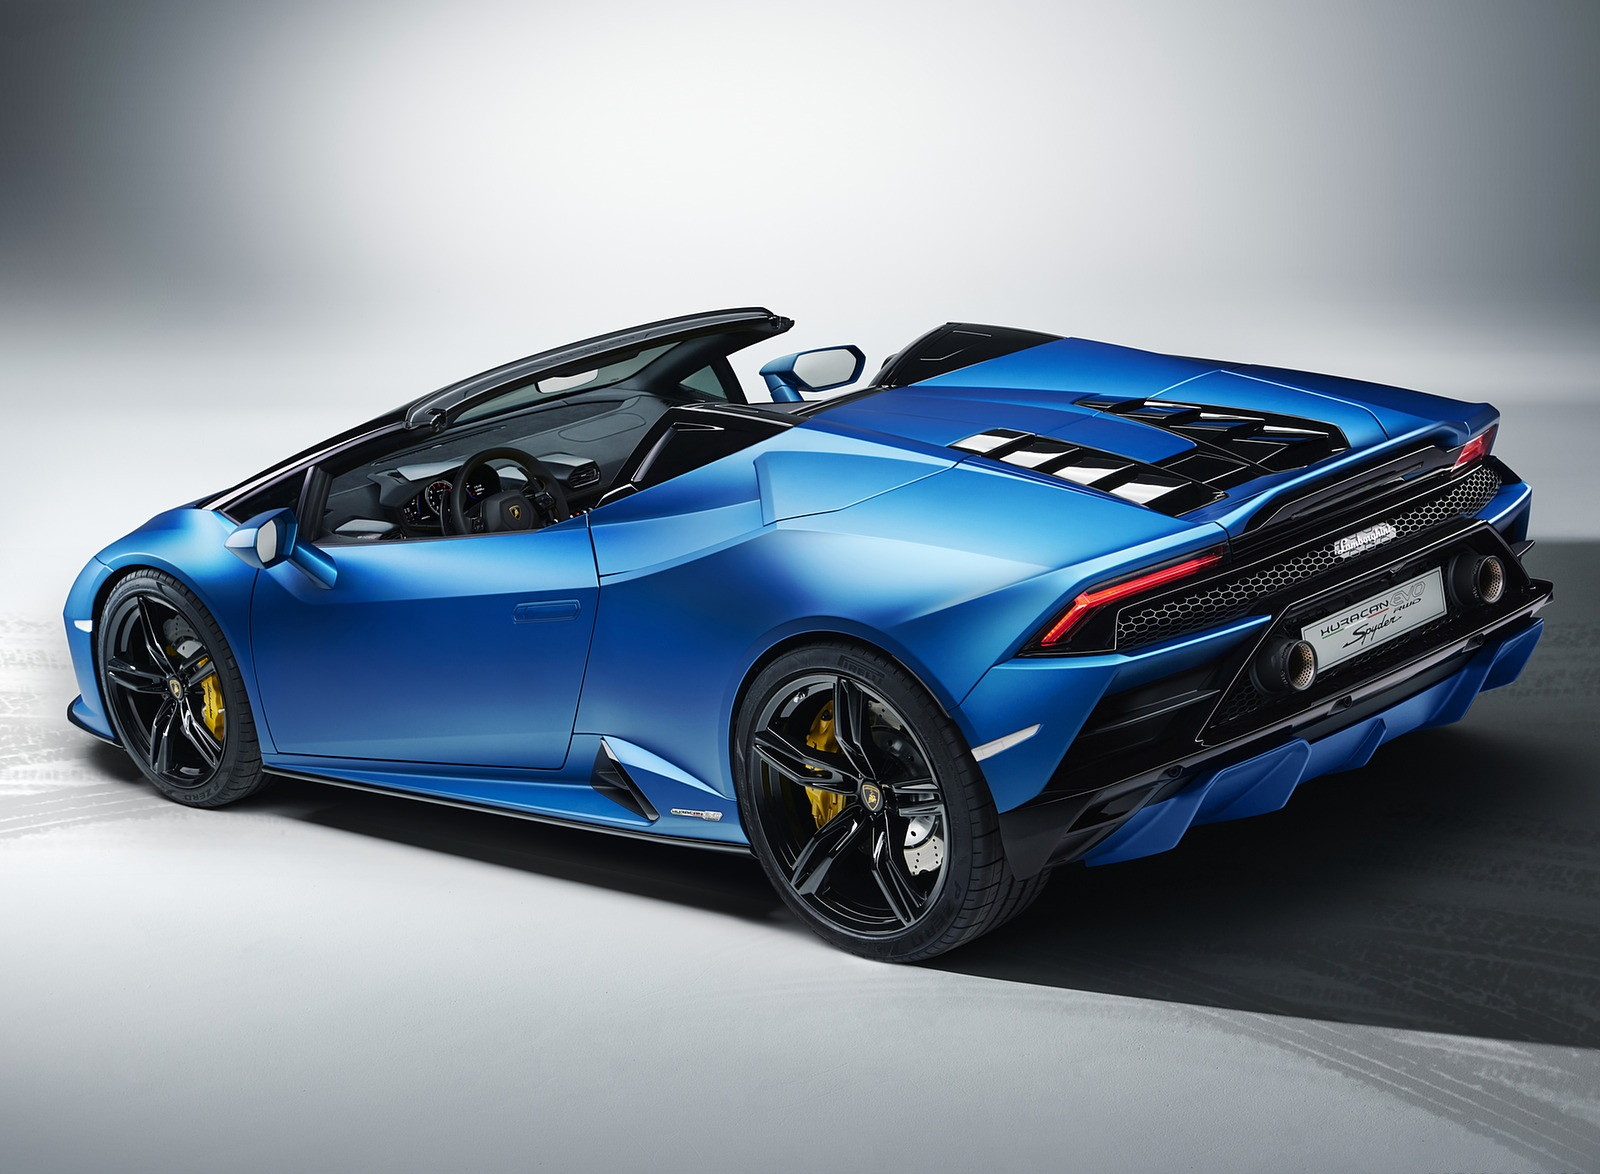 2021 Lamborghini Huracán EVO RWD Spyder Rear Three-Quarter Wallpapers (7)